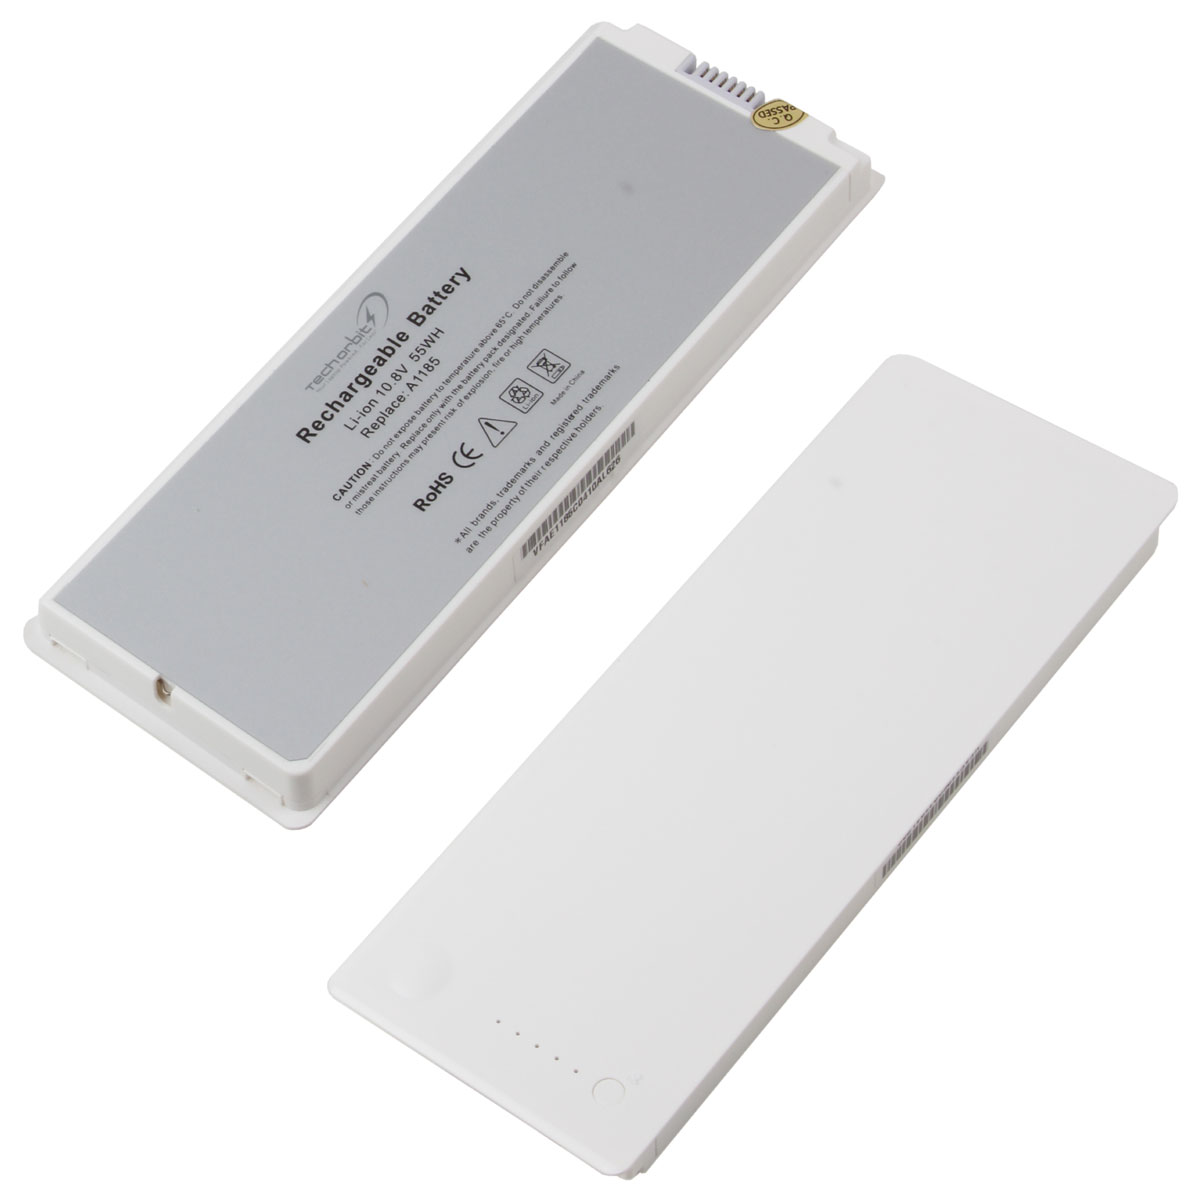 Battery for Apple Macbook A1185 Laptop